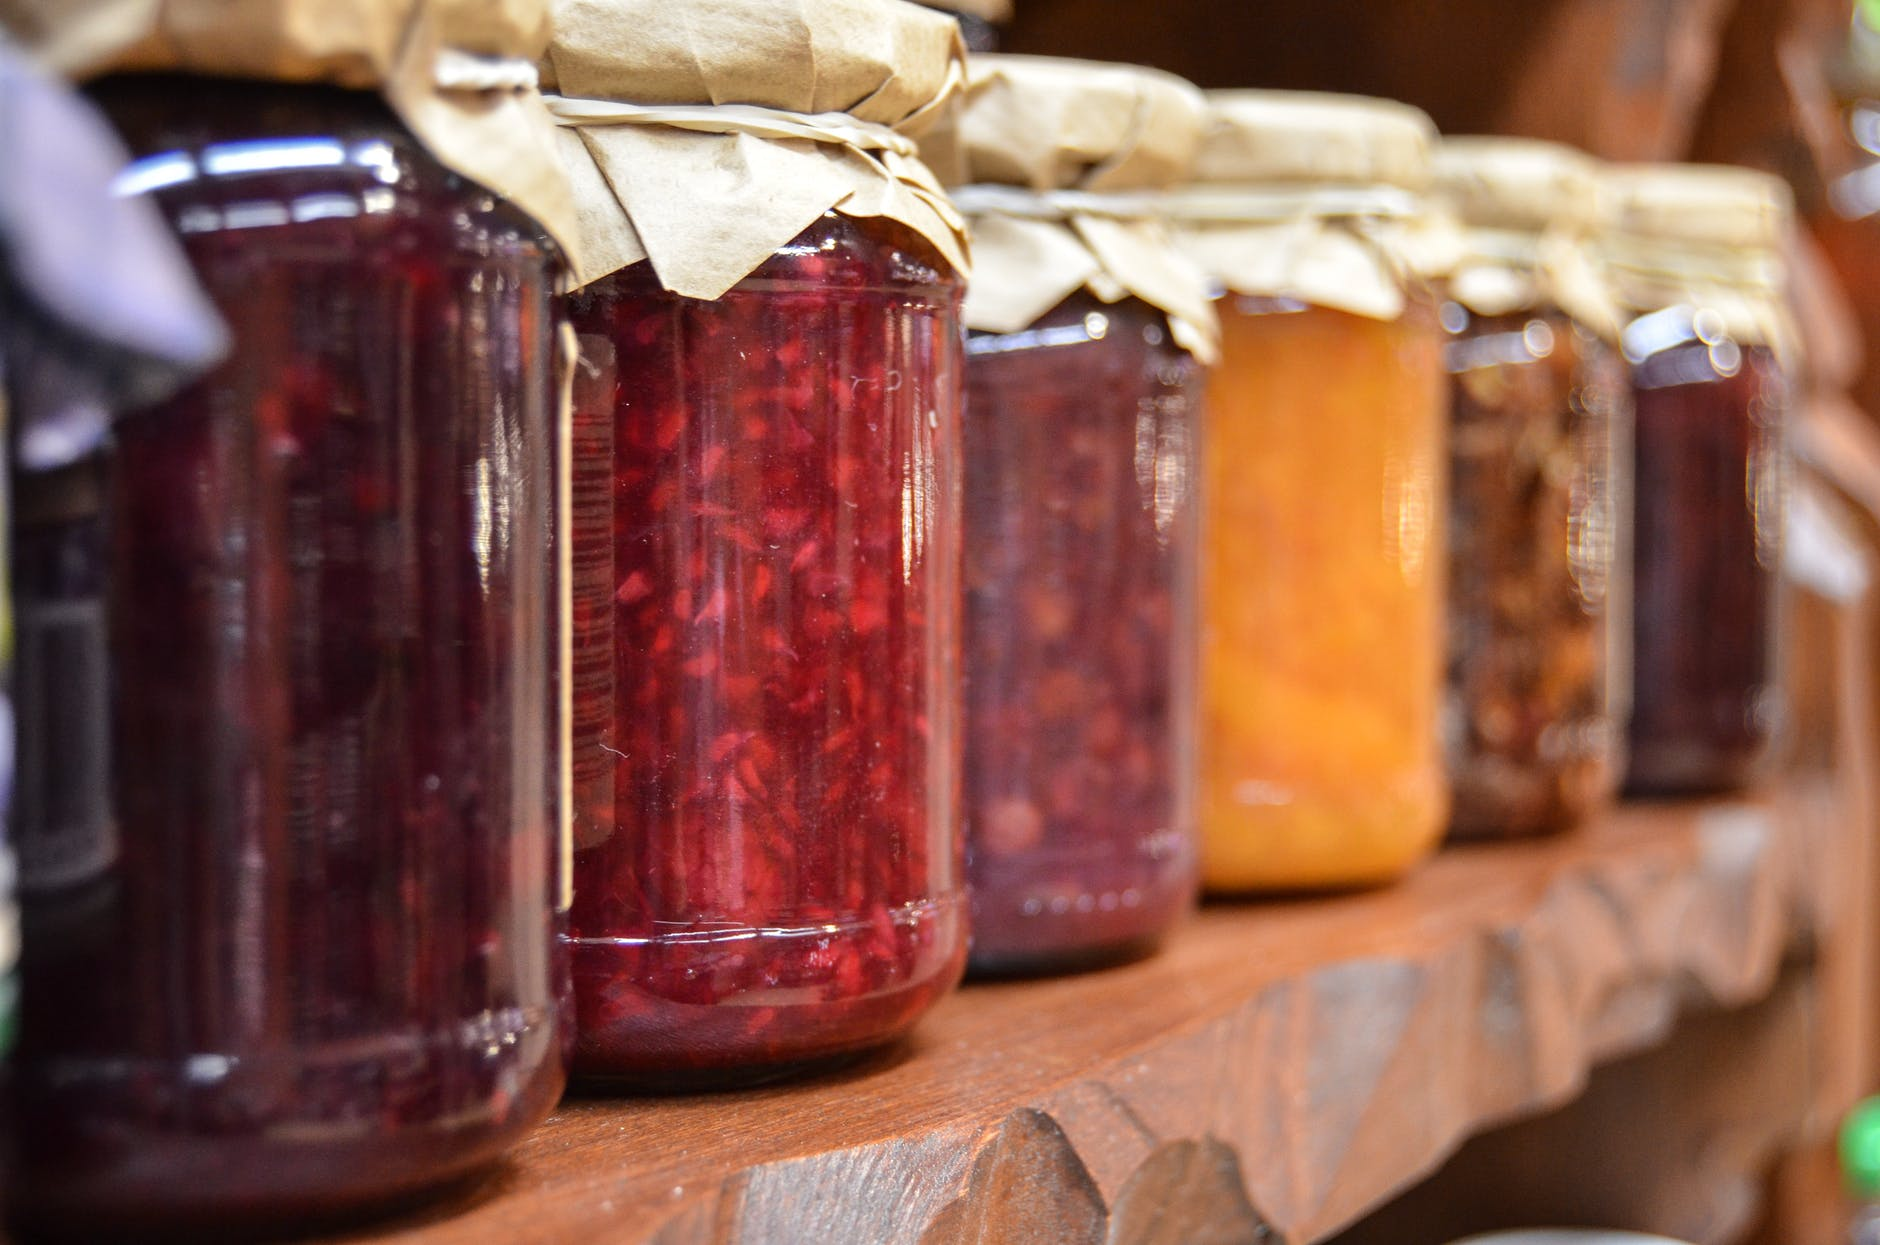 a row of homemade jams and jellies